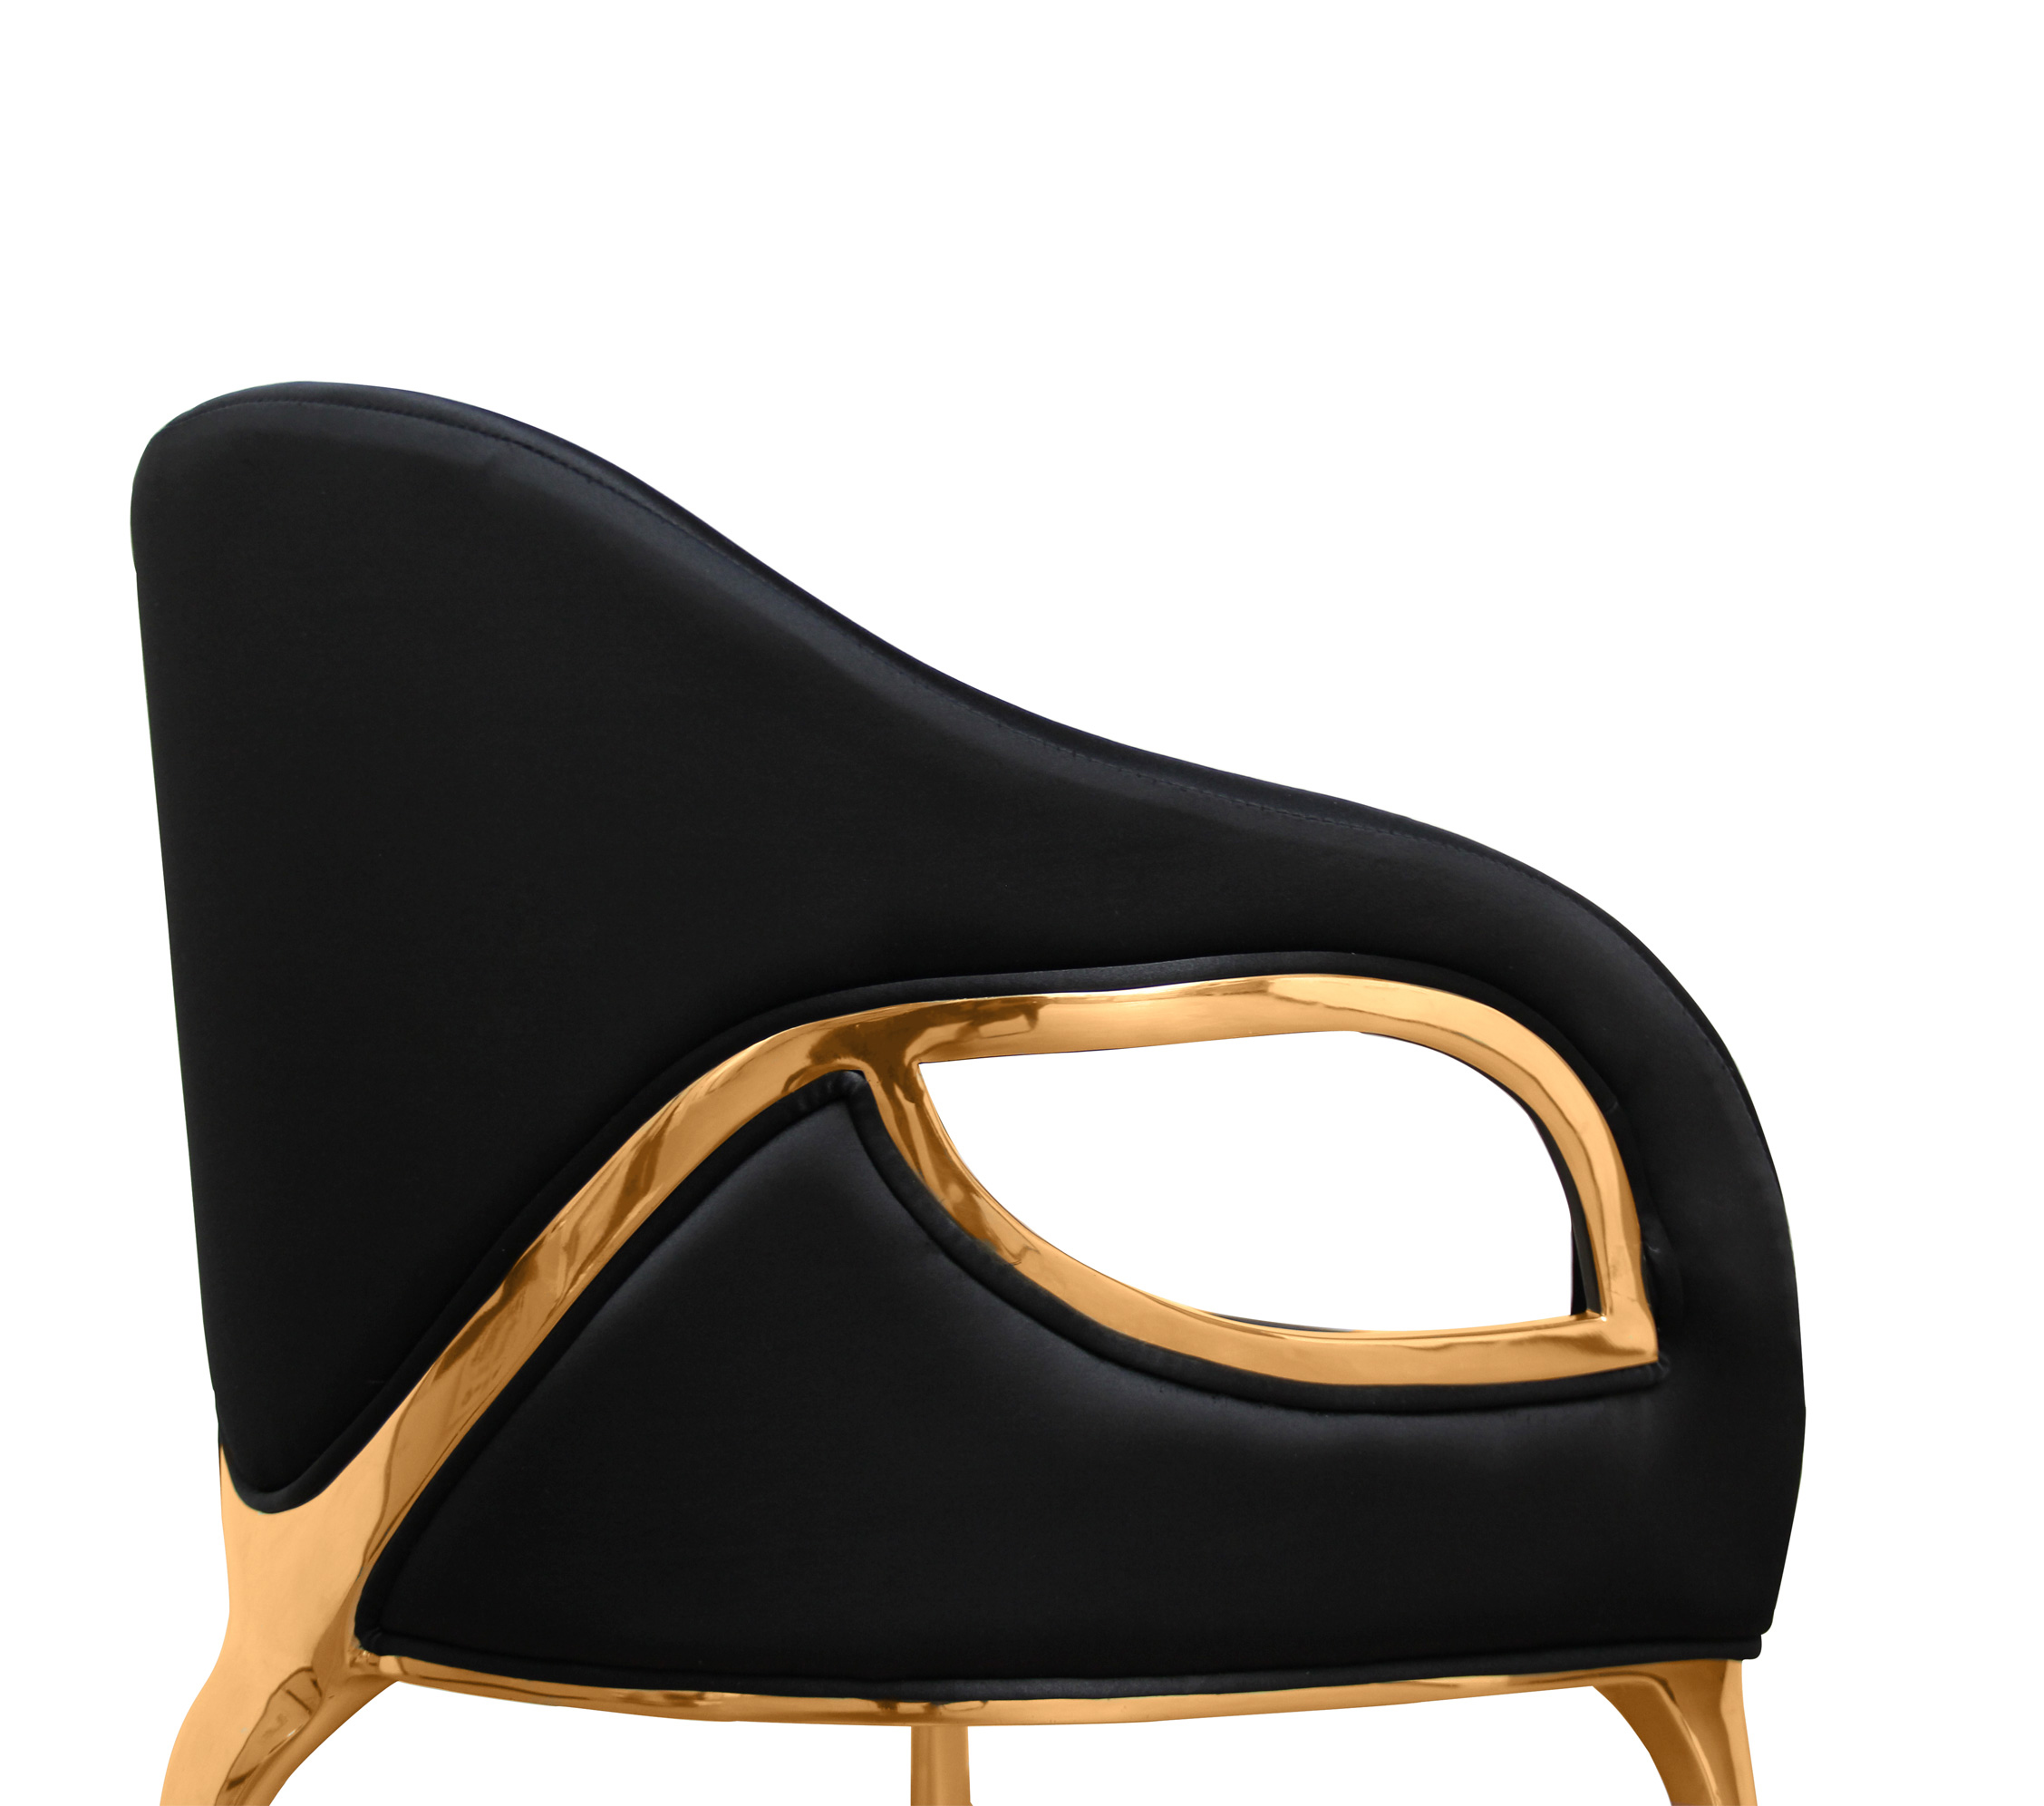 kotti armchairs products chair eco brass chairs modern dining by outdoor furniture armchair